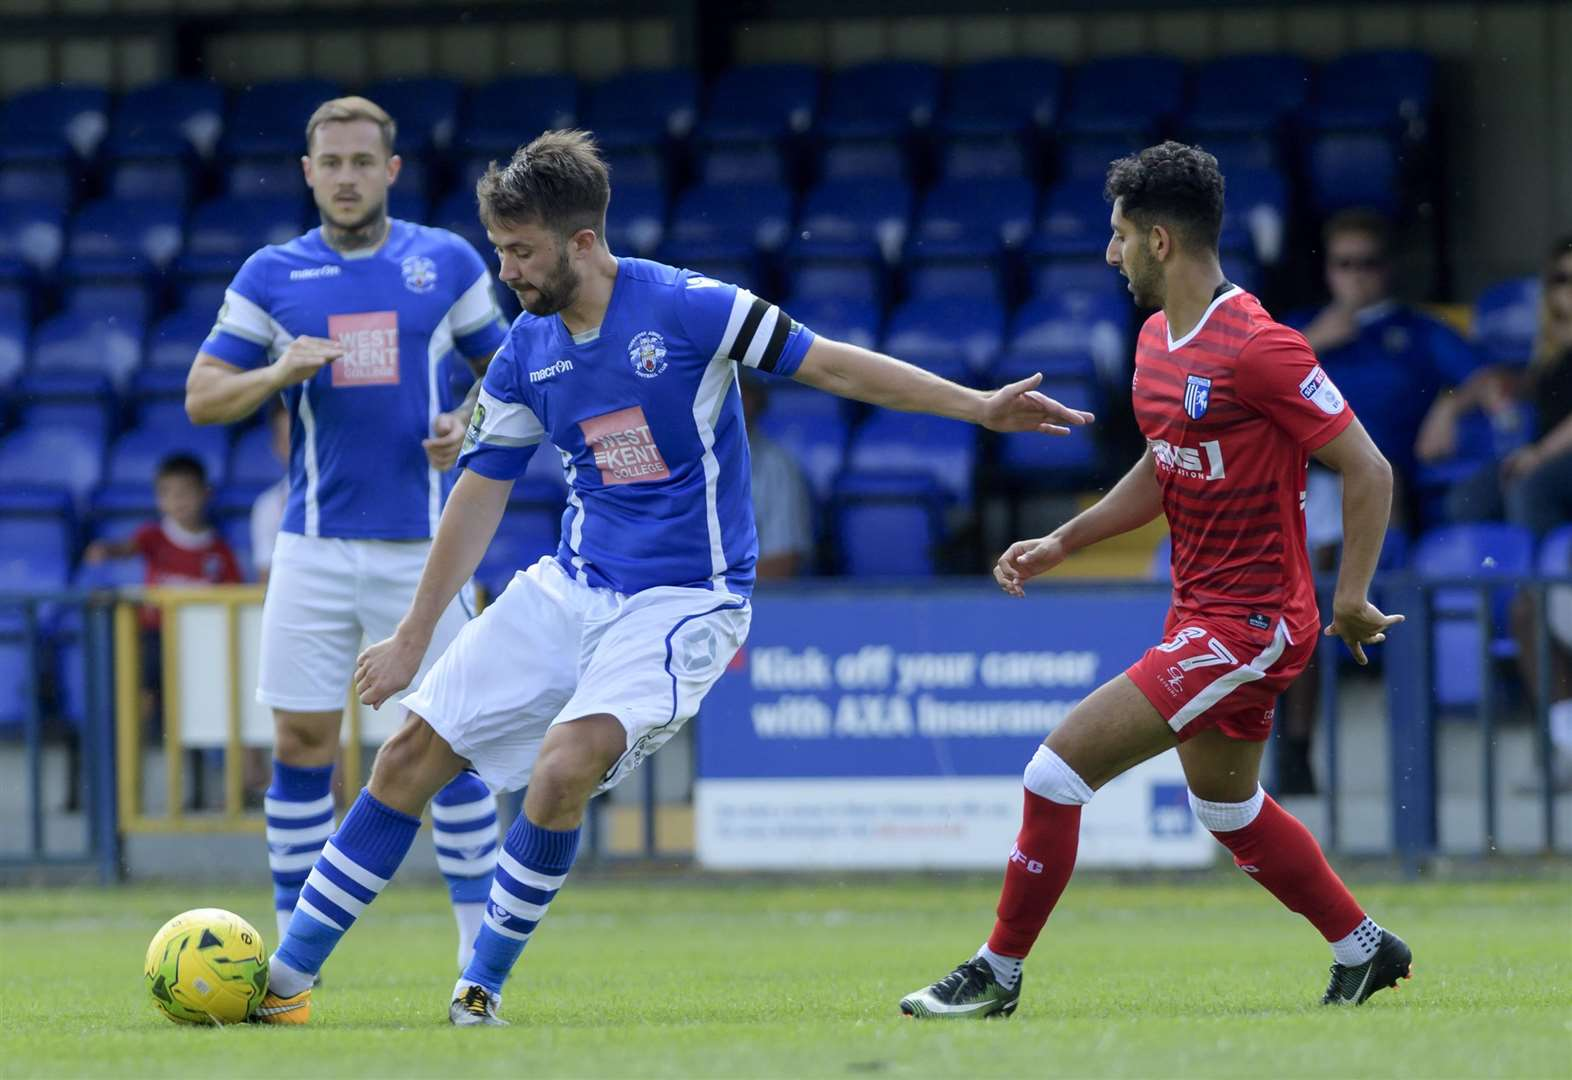 Tonbridge Angels 1 Gillingham 5 - top 10 pictures